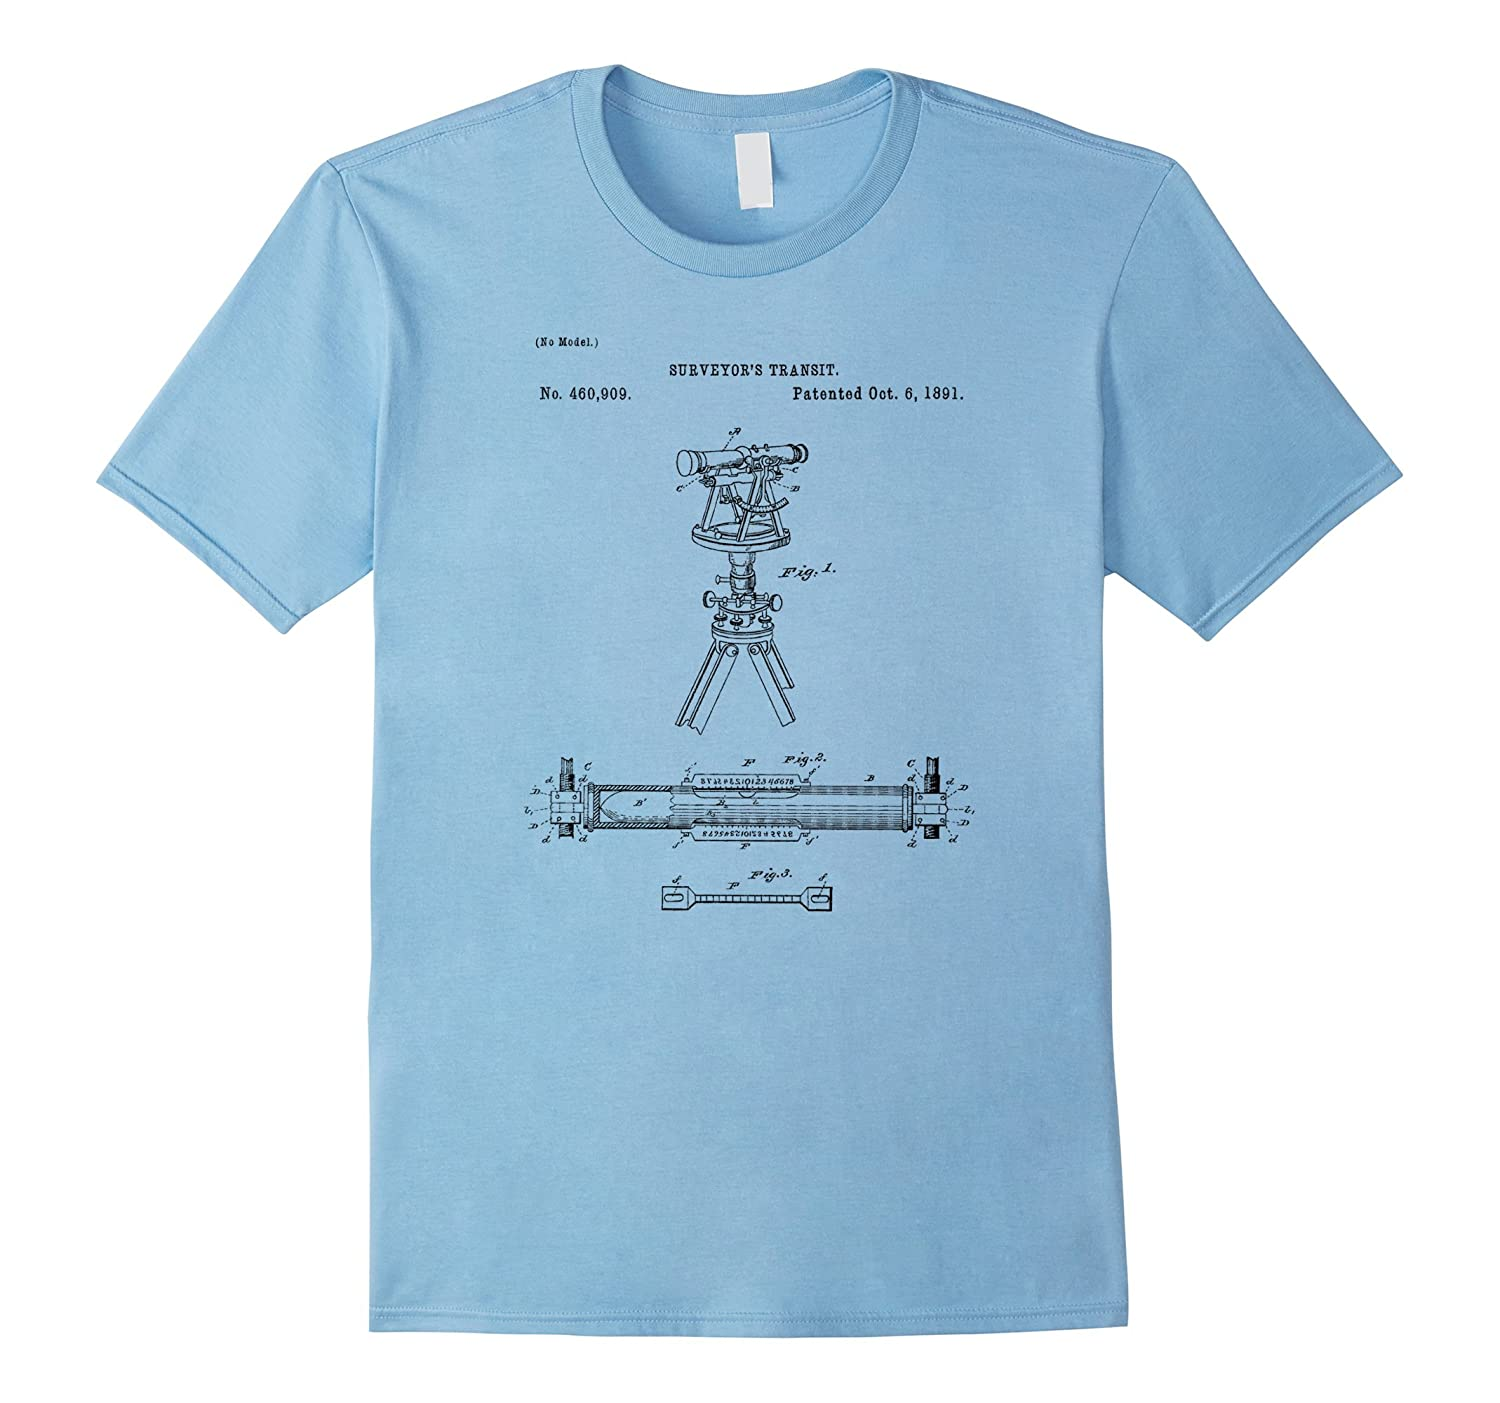 Surveyors Tool Shirt - Surveying Theodolite Surveyor Tees-PL